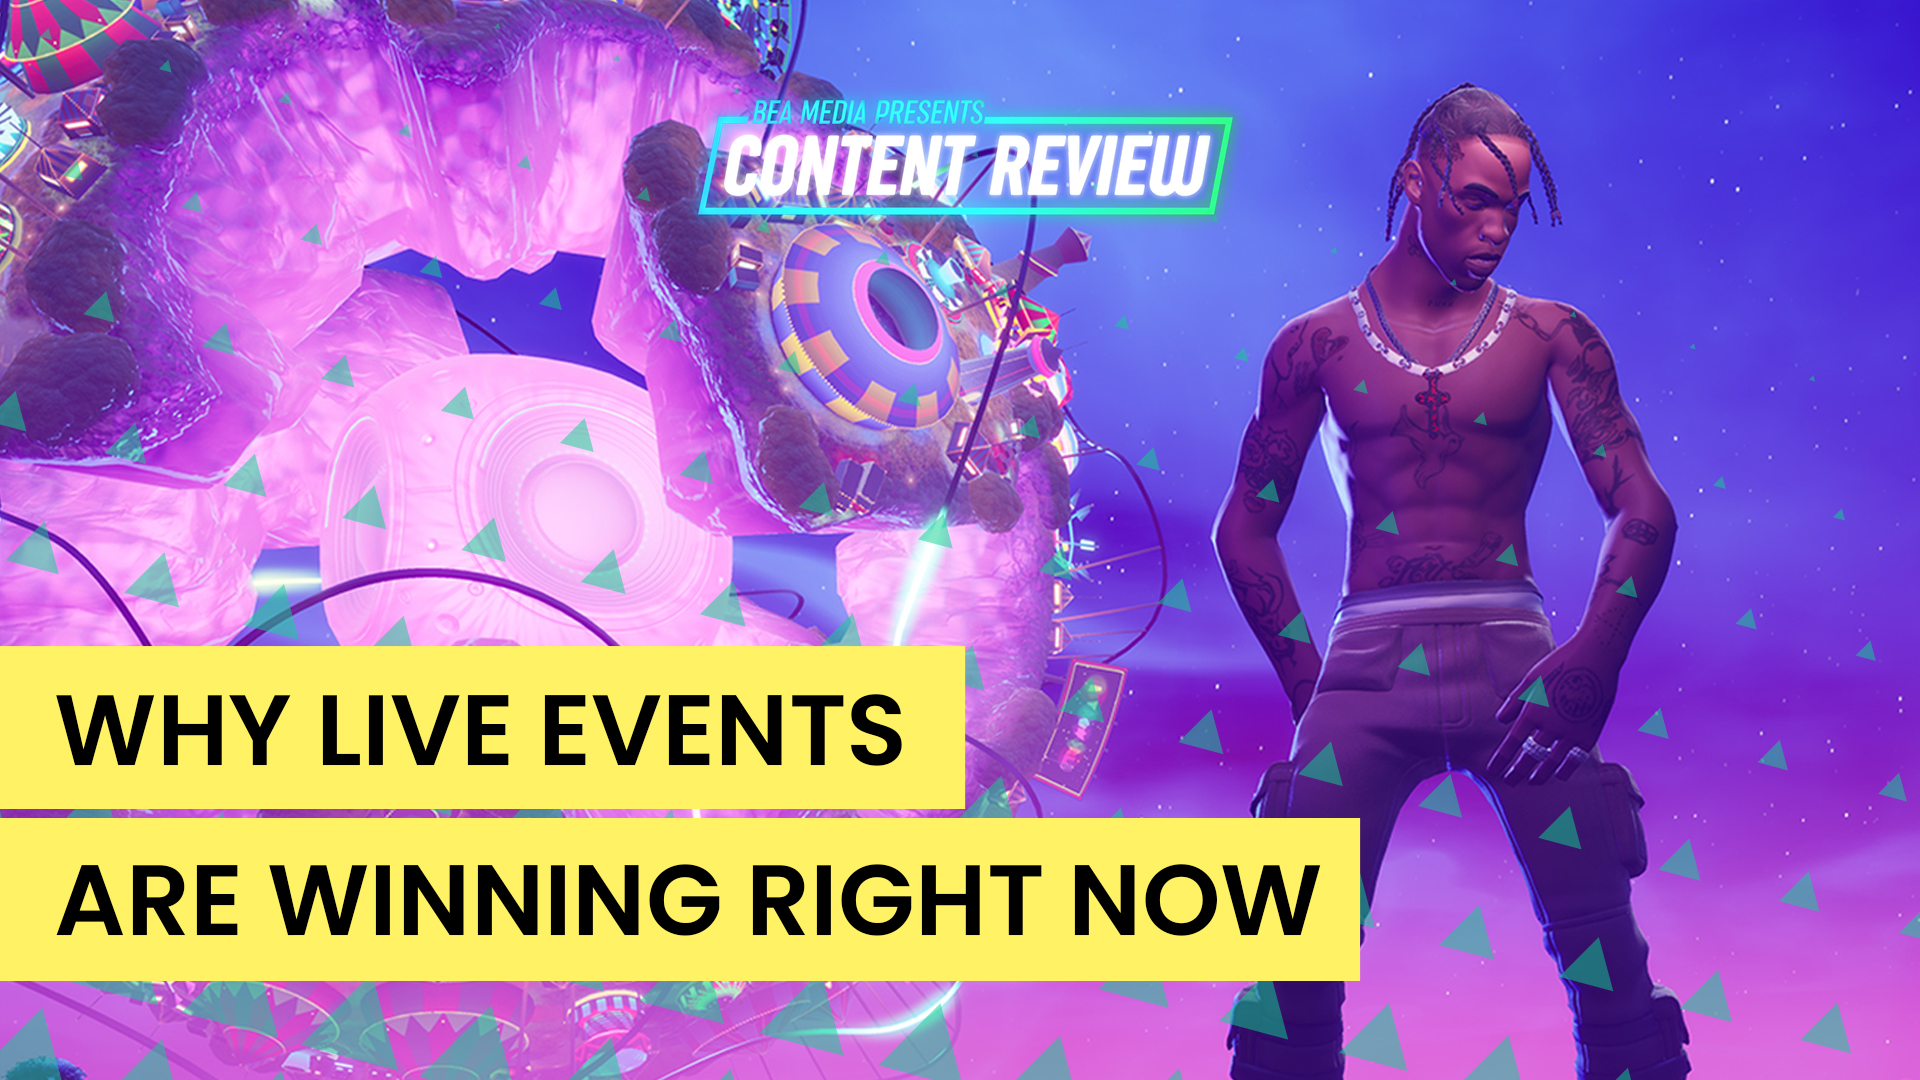 Are Live Events Winning Right Now?